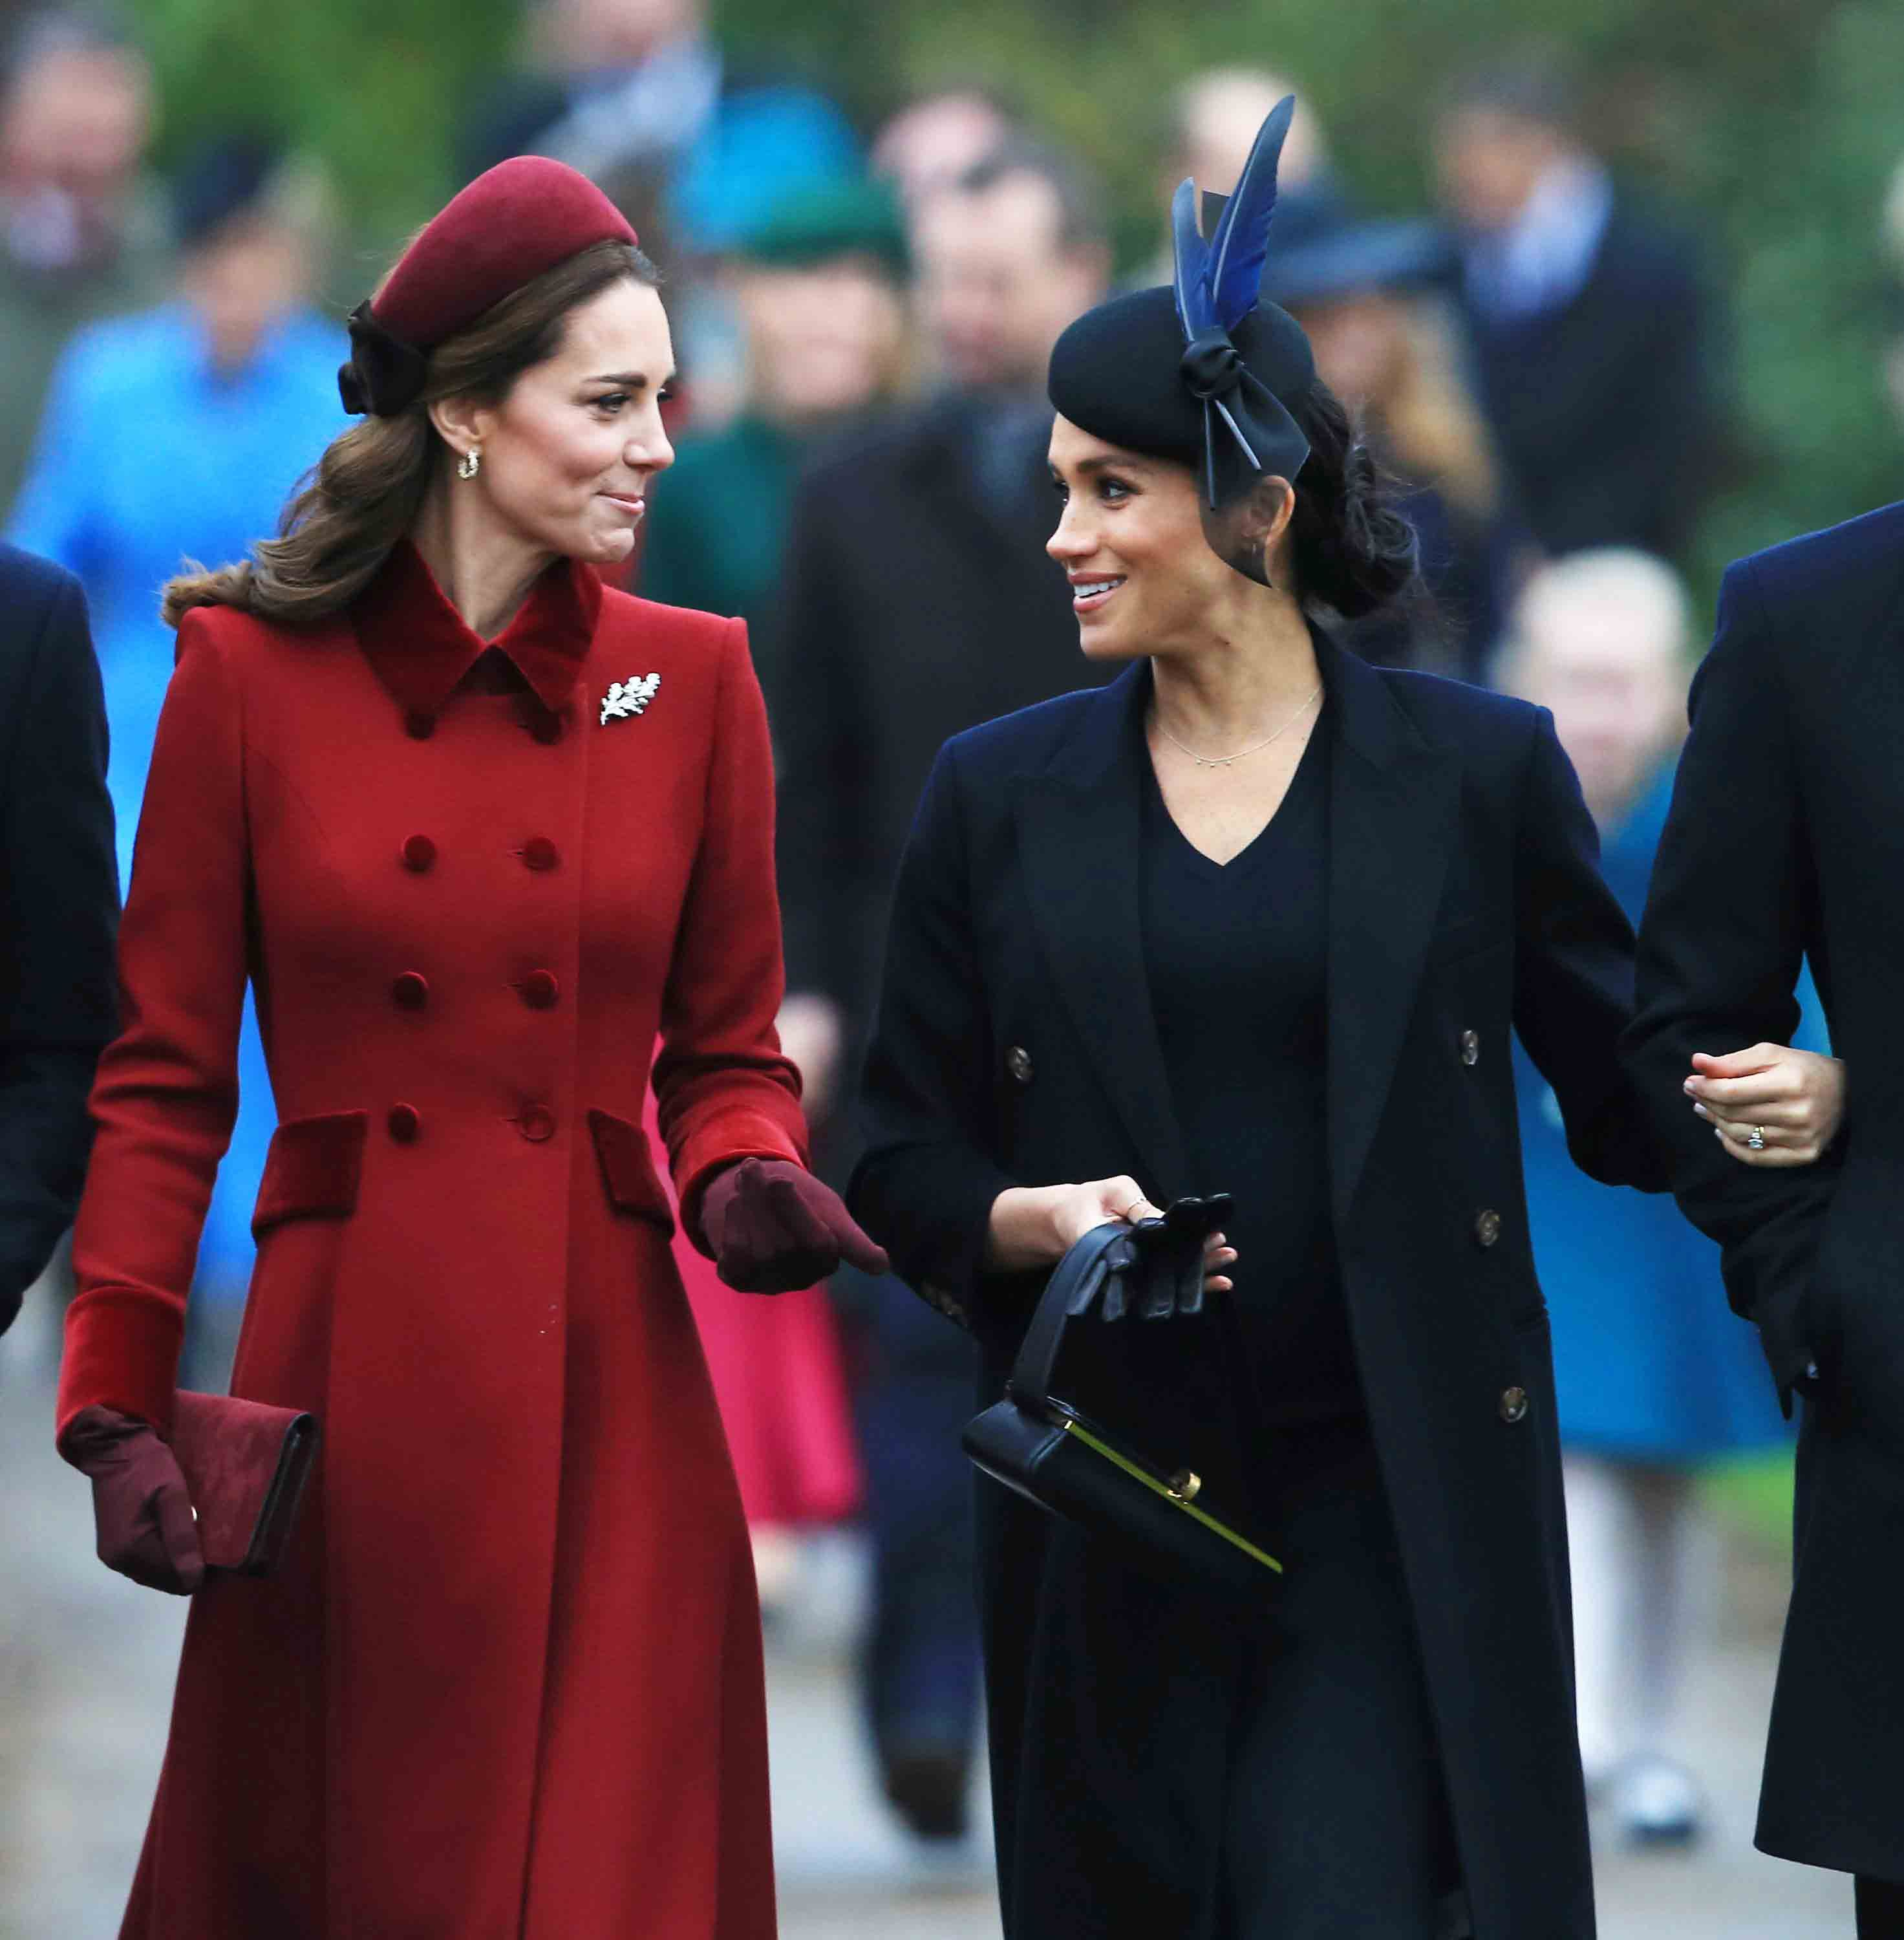 kate middleton and meghan markle reportedly bonded over scrabble on